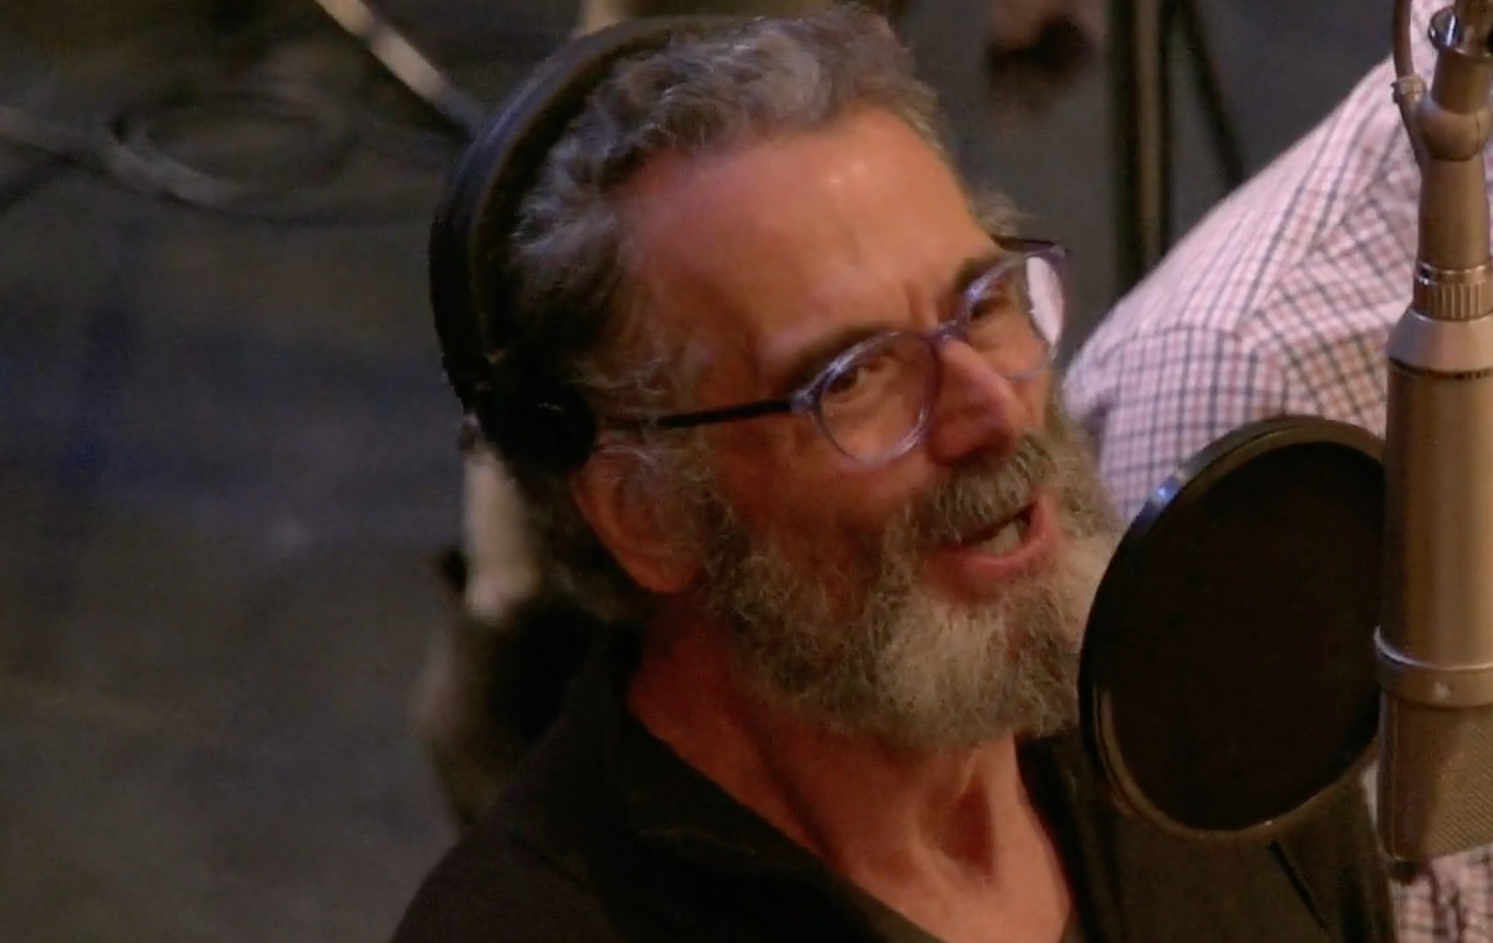 Yiddish Fiddler on the Roof Releases Cast Album August 23